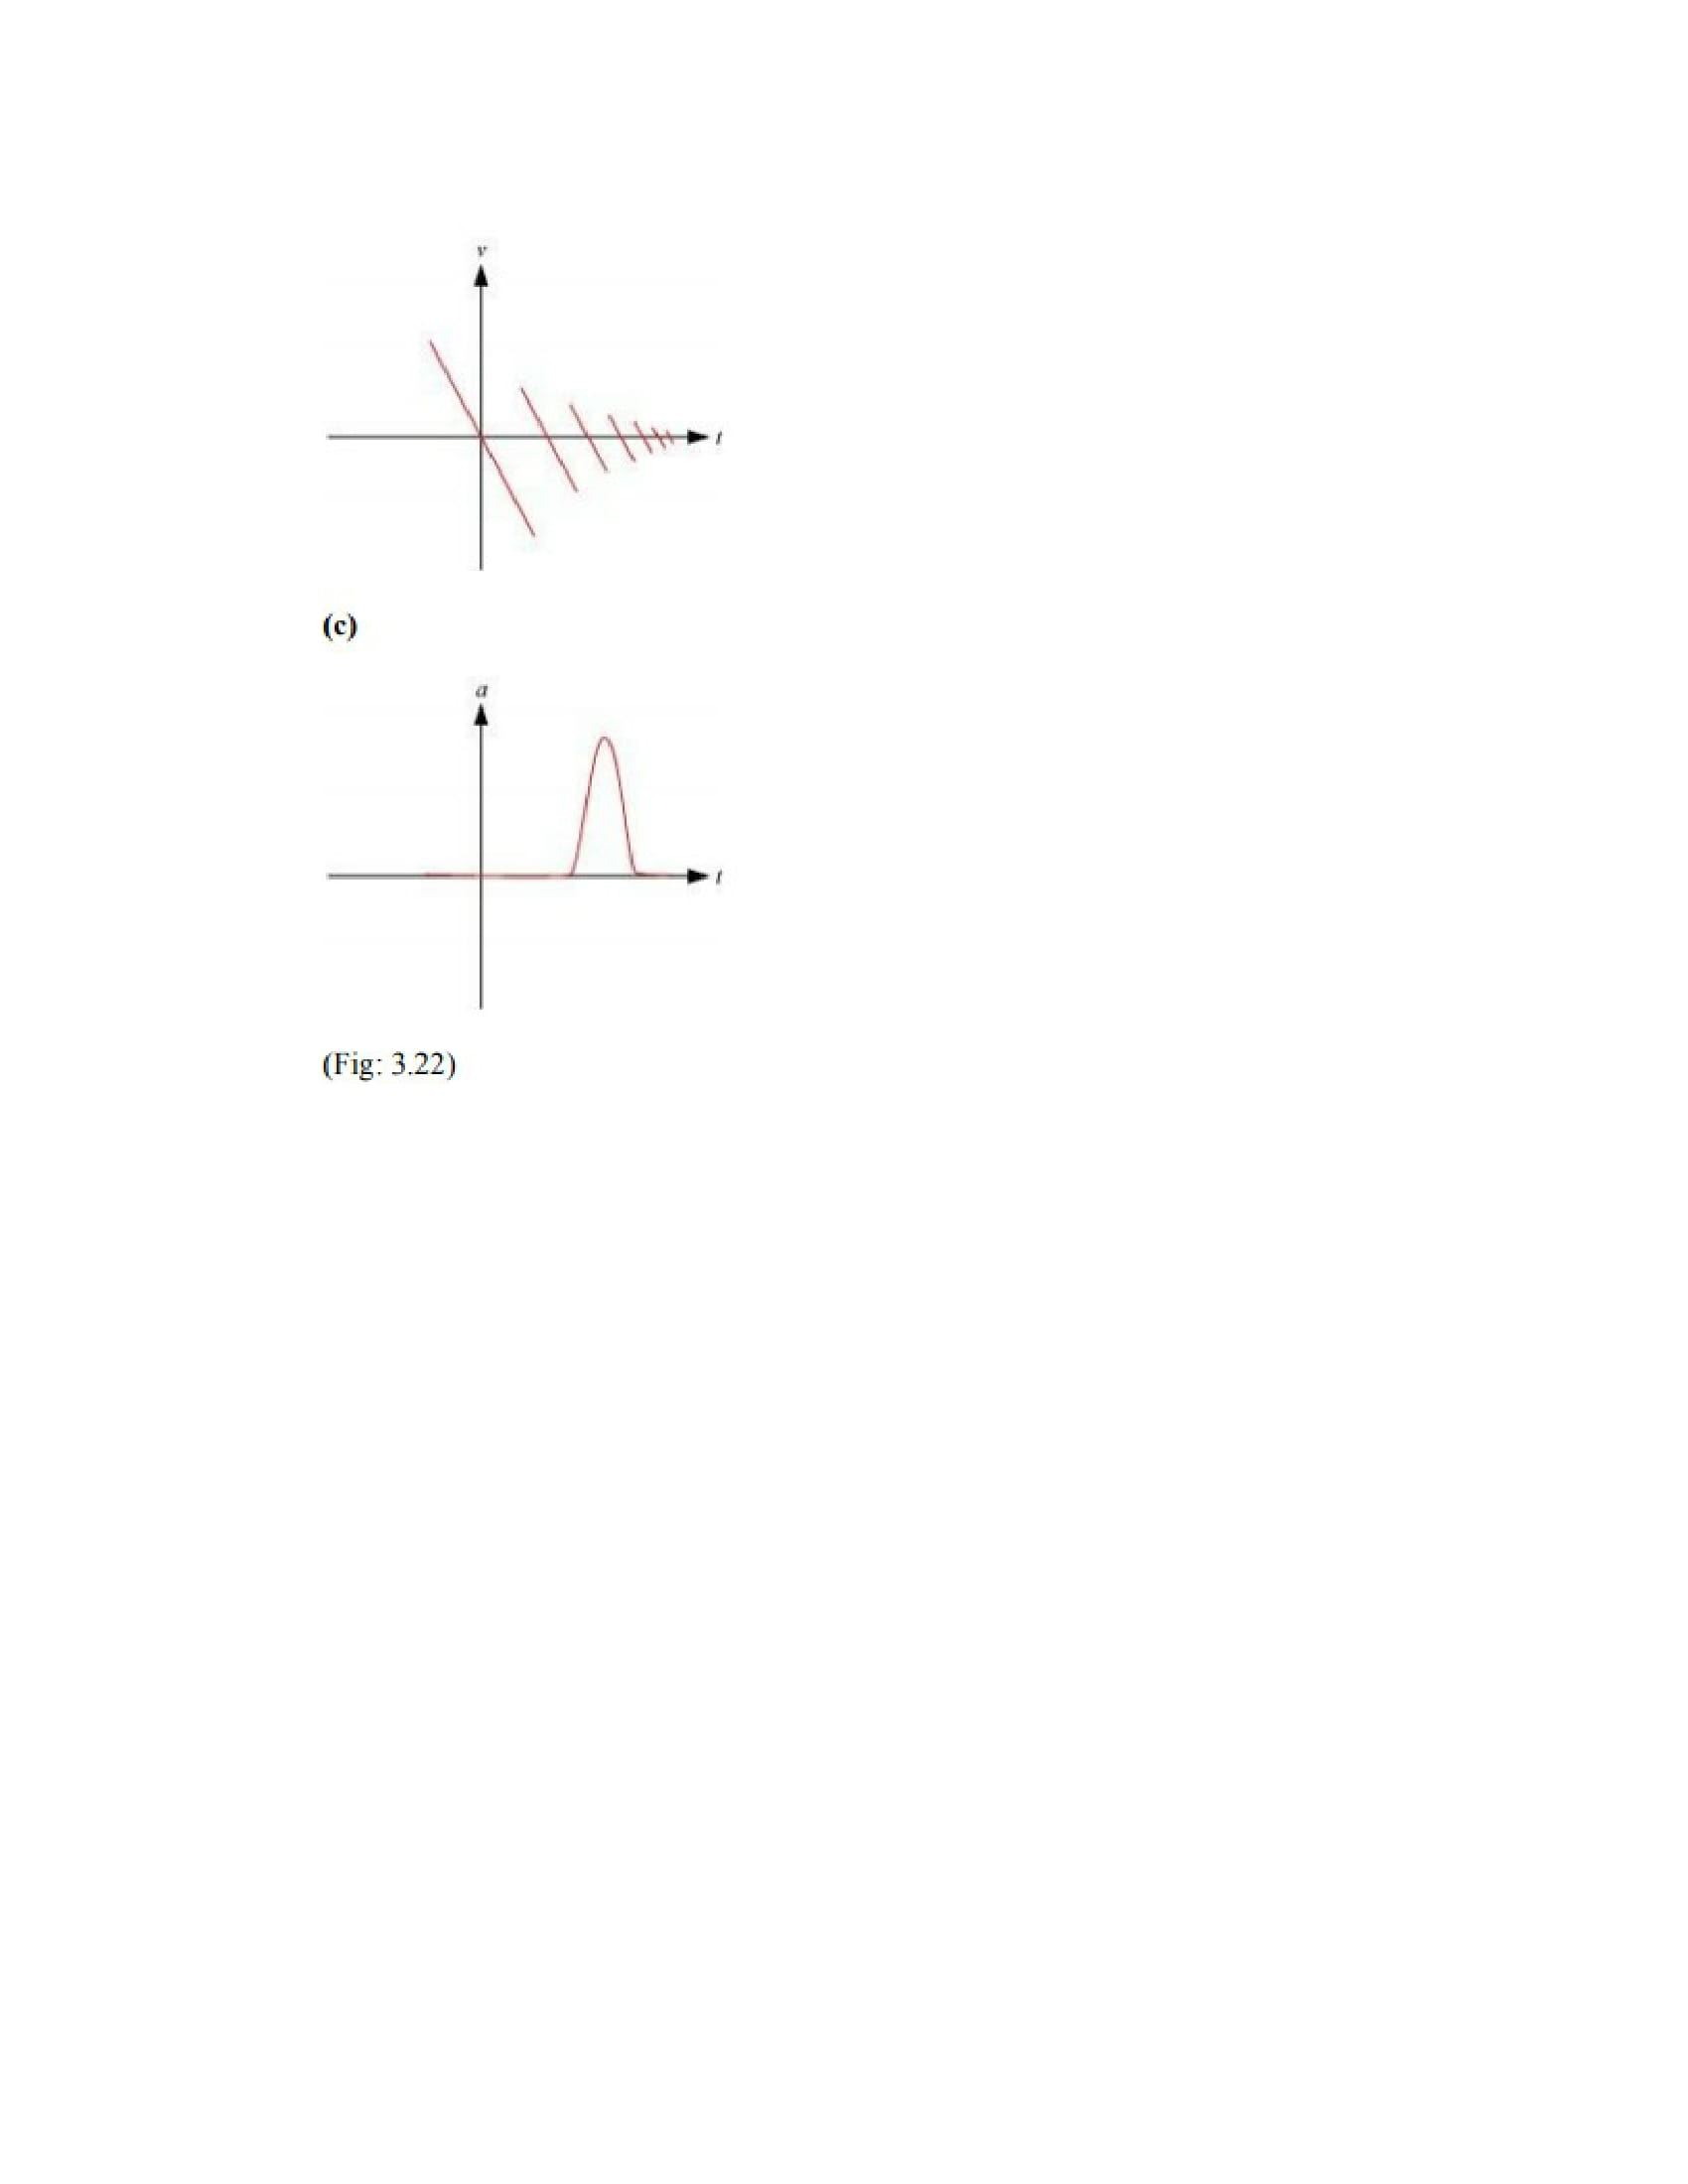 Physics Numericals Class 11 Chapter 3 25